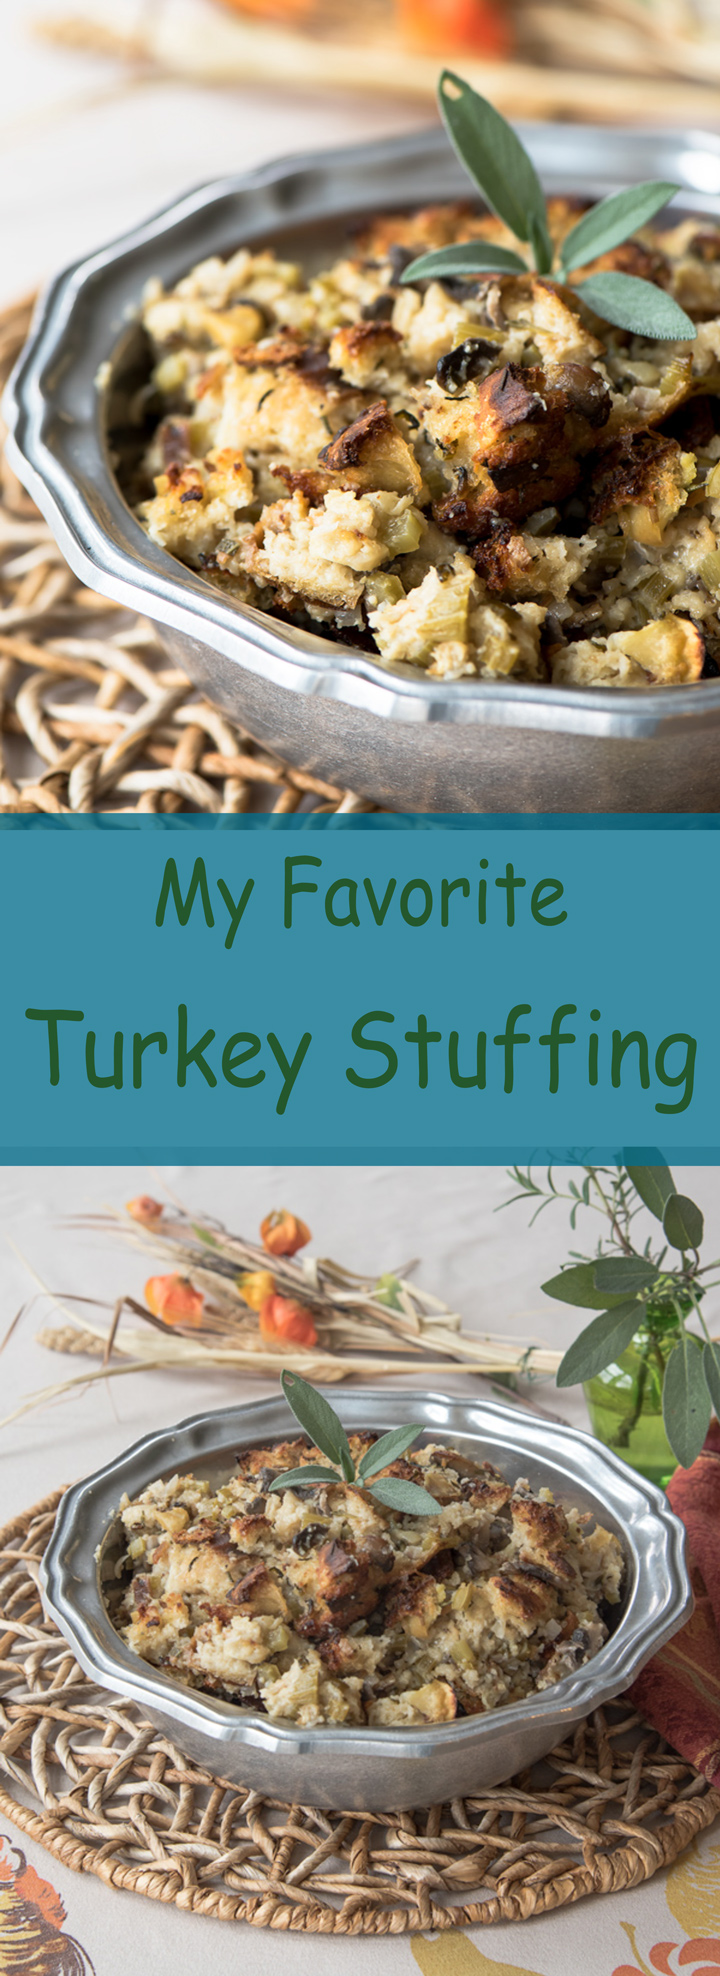 My favorite recipe for turkey stuffing .